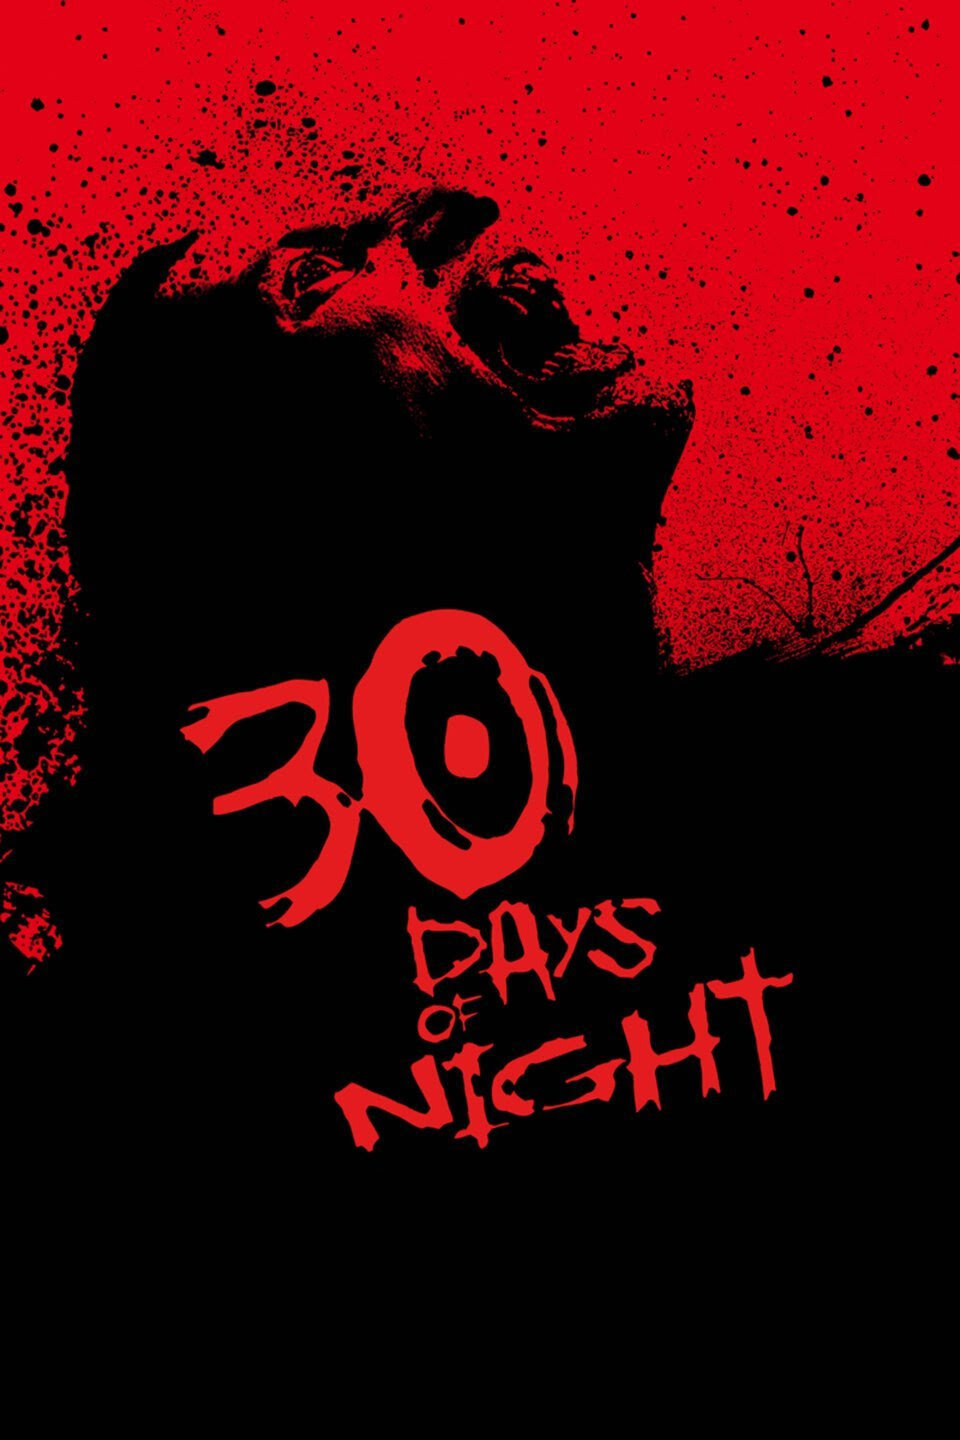 30 days of night winter horror poster